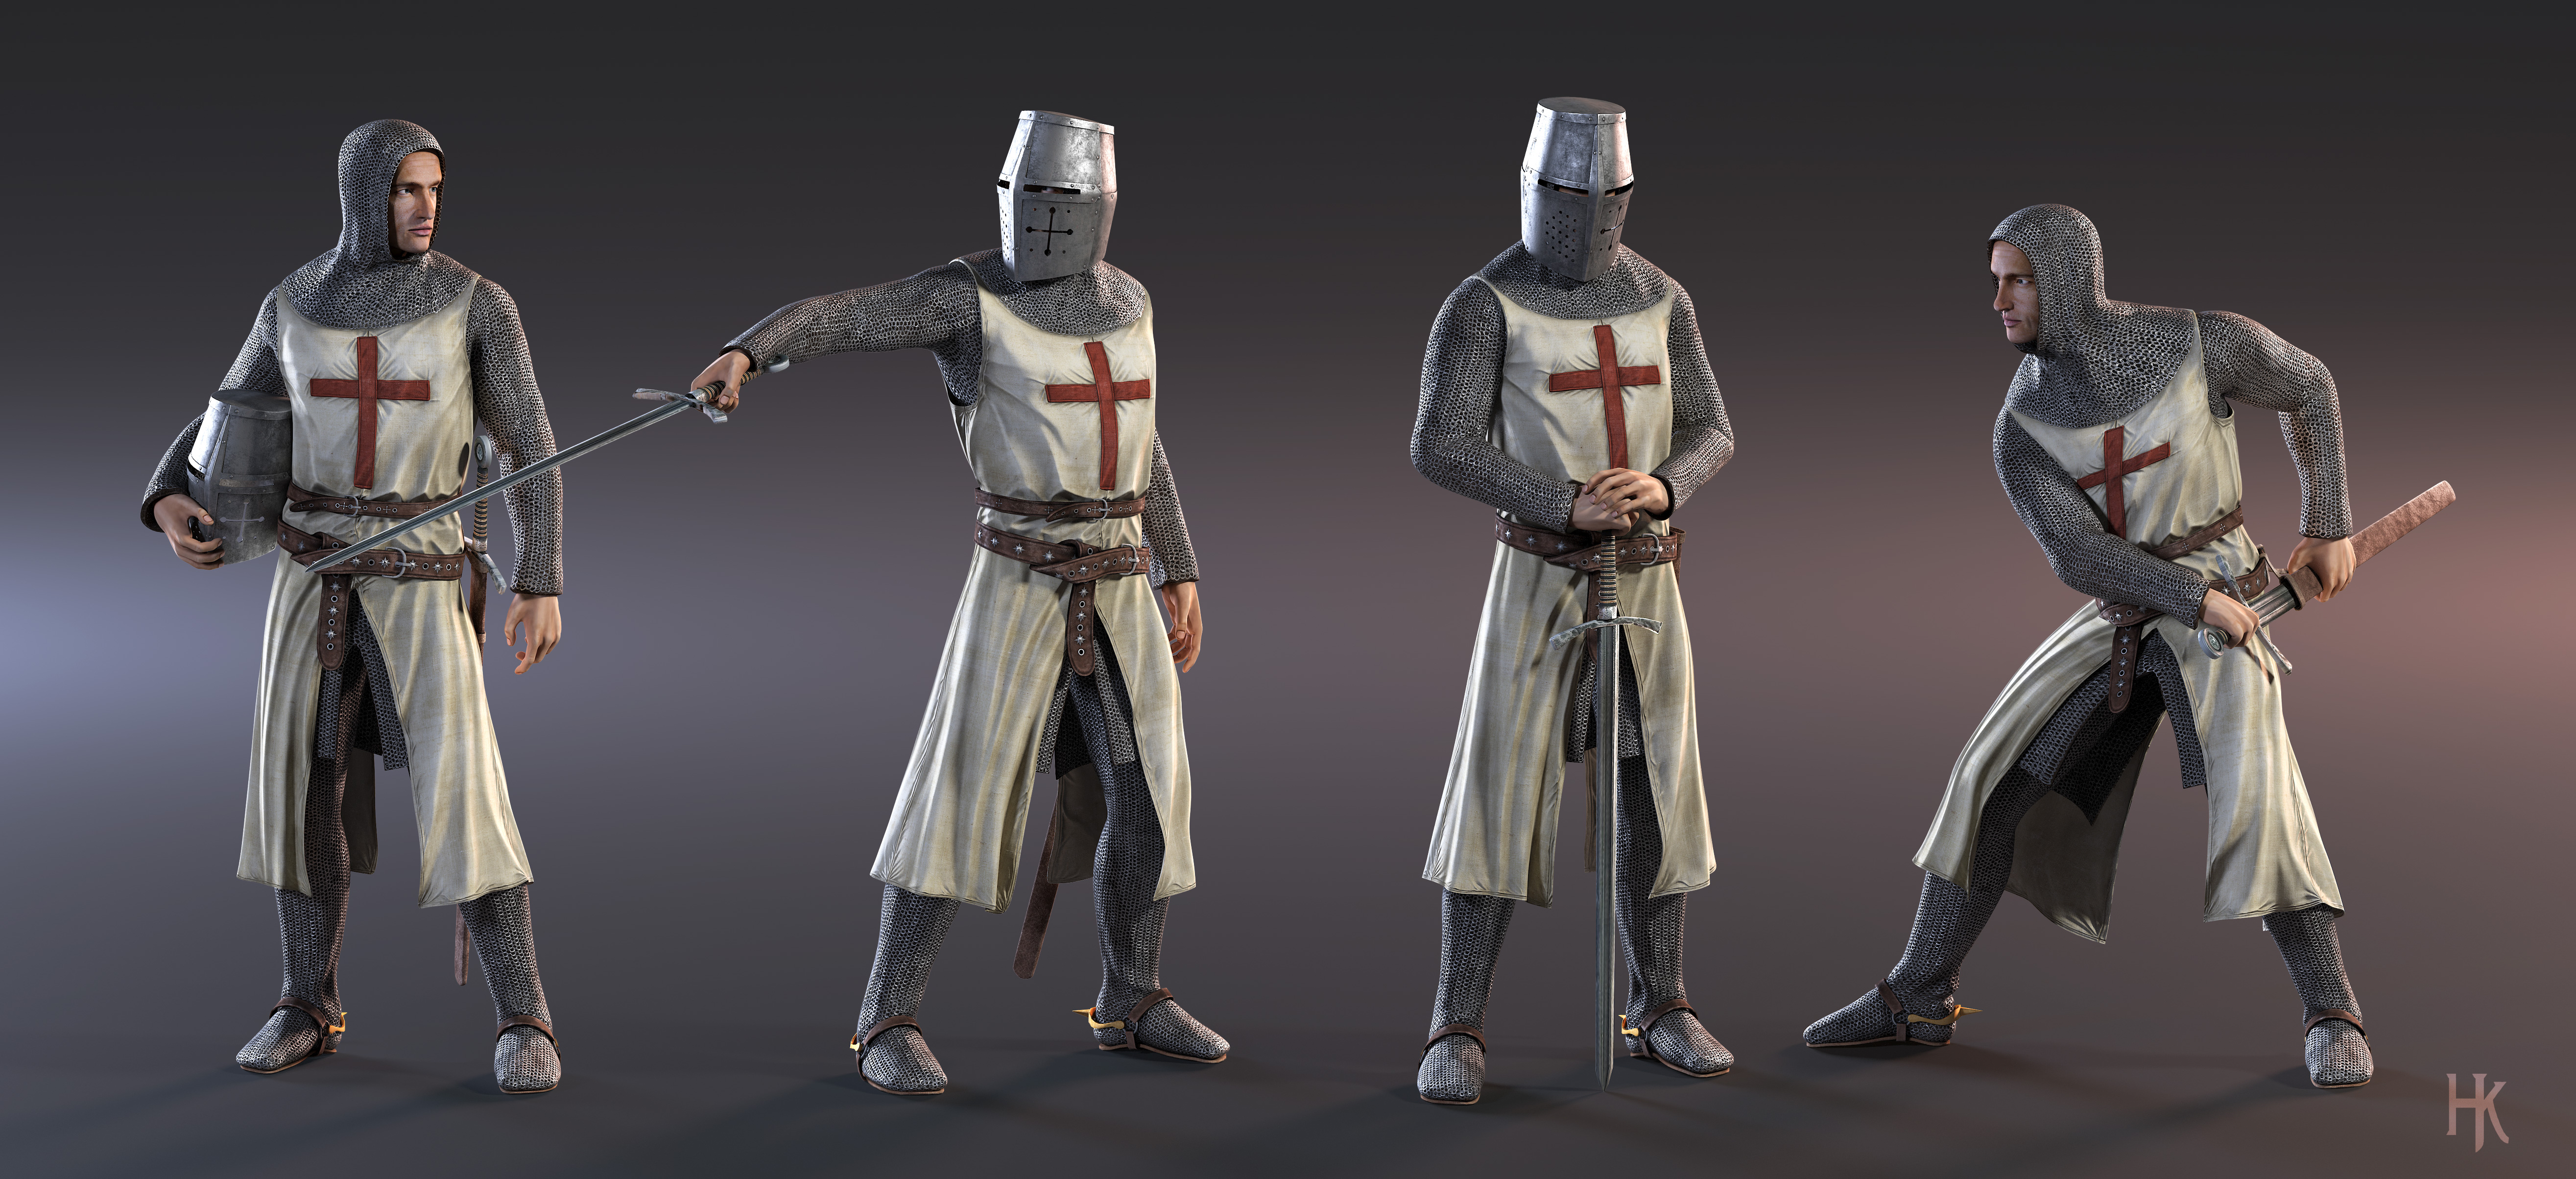 Permalink to Who Are The Knight Templar